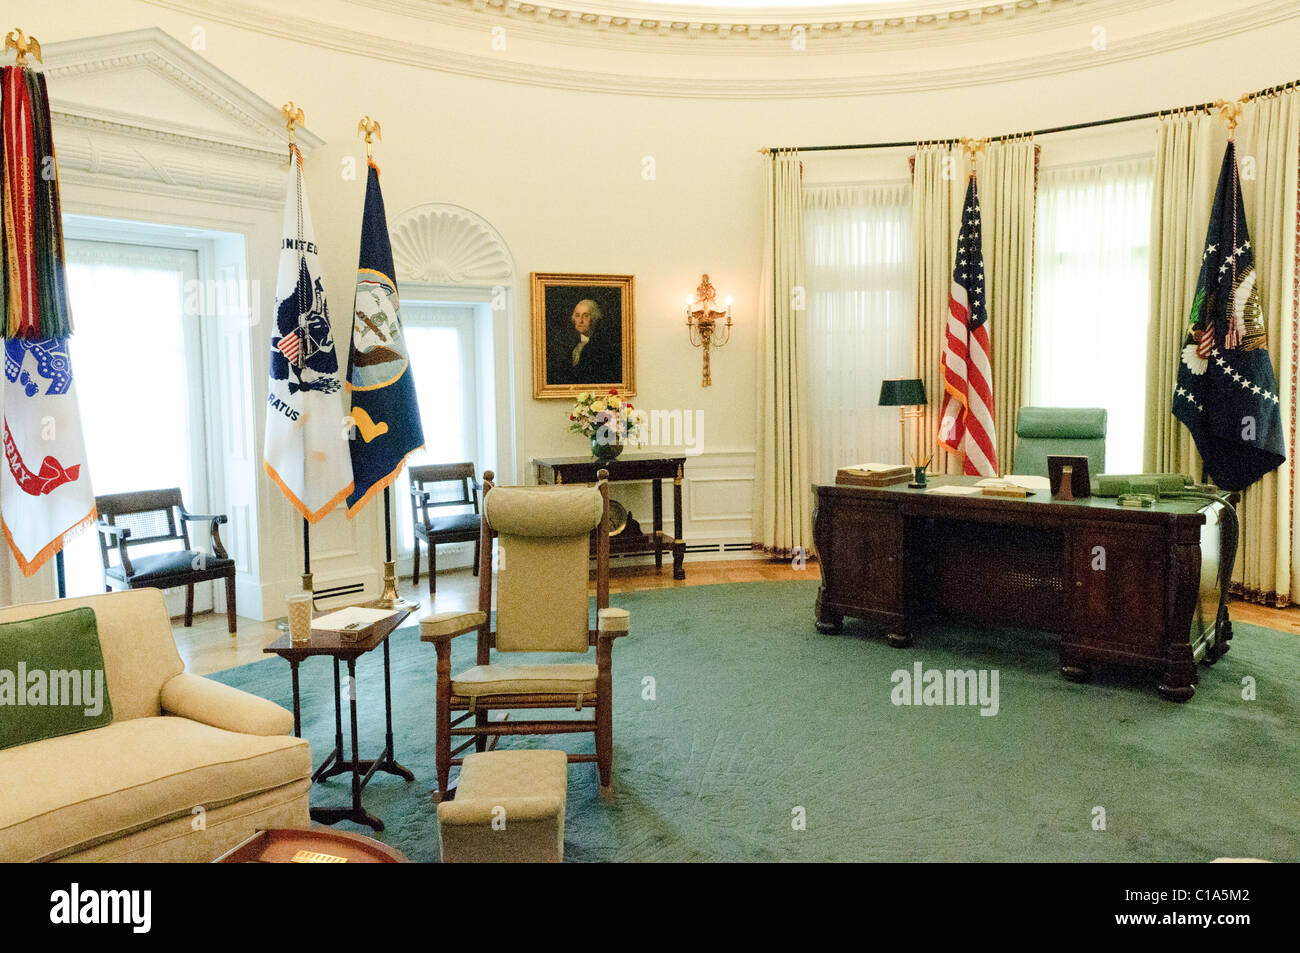 Replica of President Lyndon B. Johnson's Oval Office, display as part of the LBJ Museum in Austin, Texas. Stock Photo